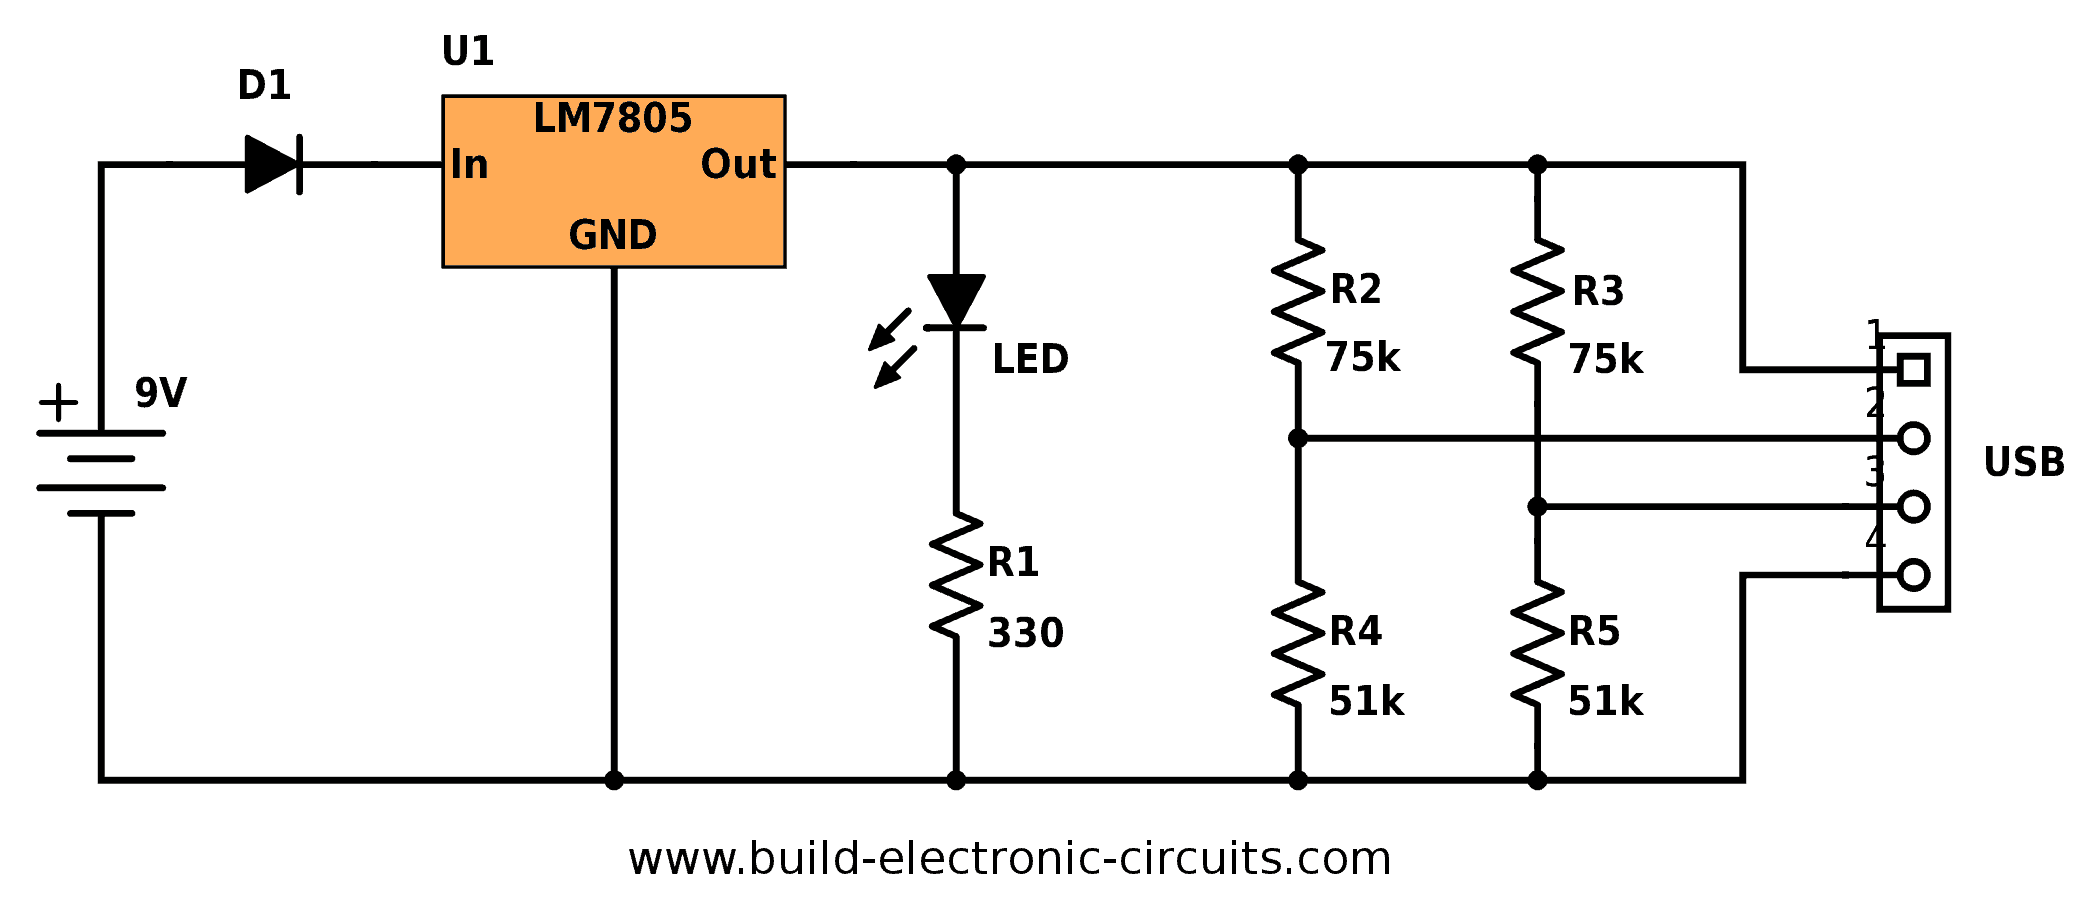 Portable Usb Charger Circuit Build Electronic Circuits And Or Diagram